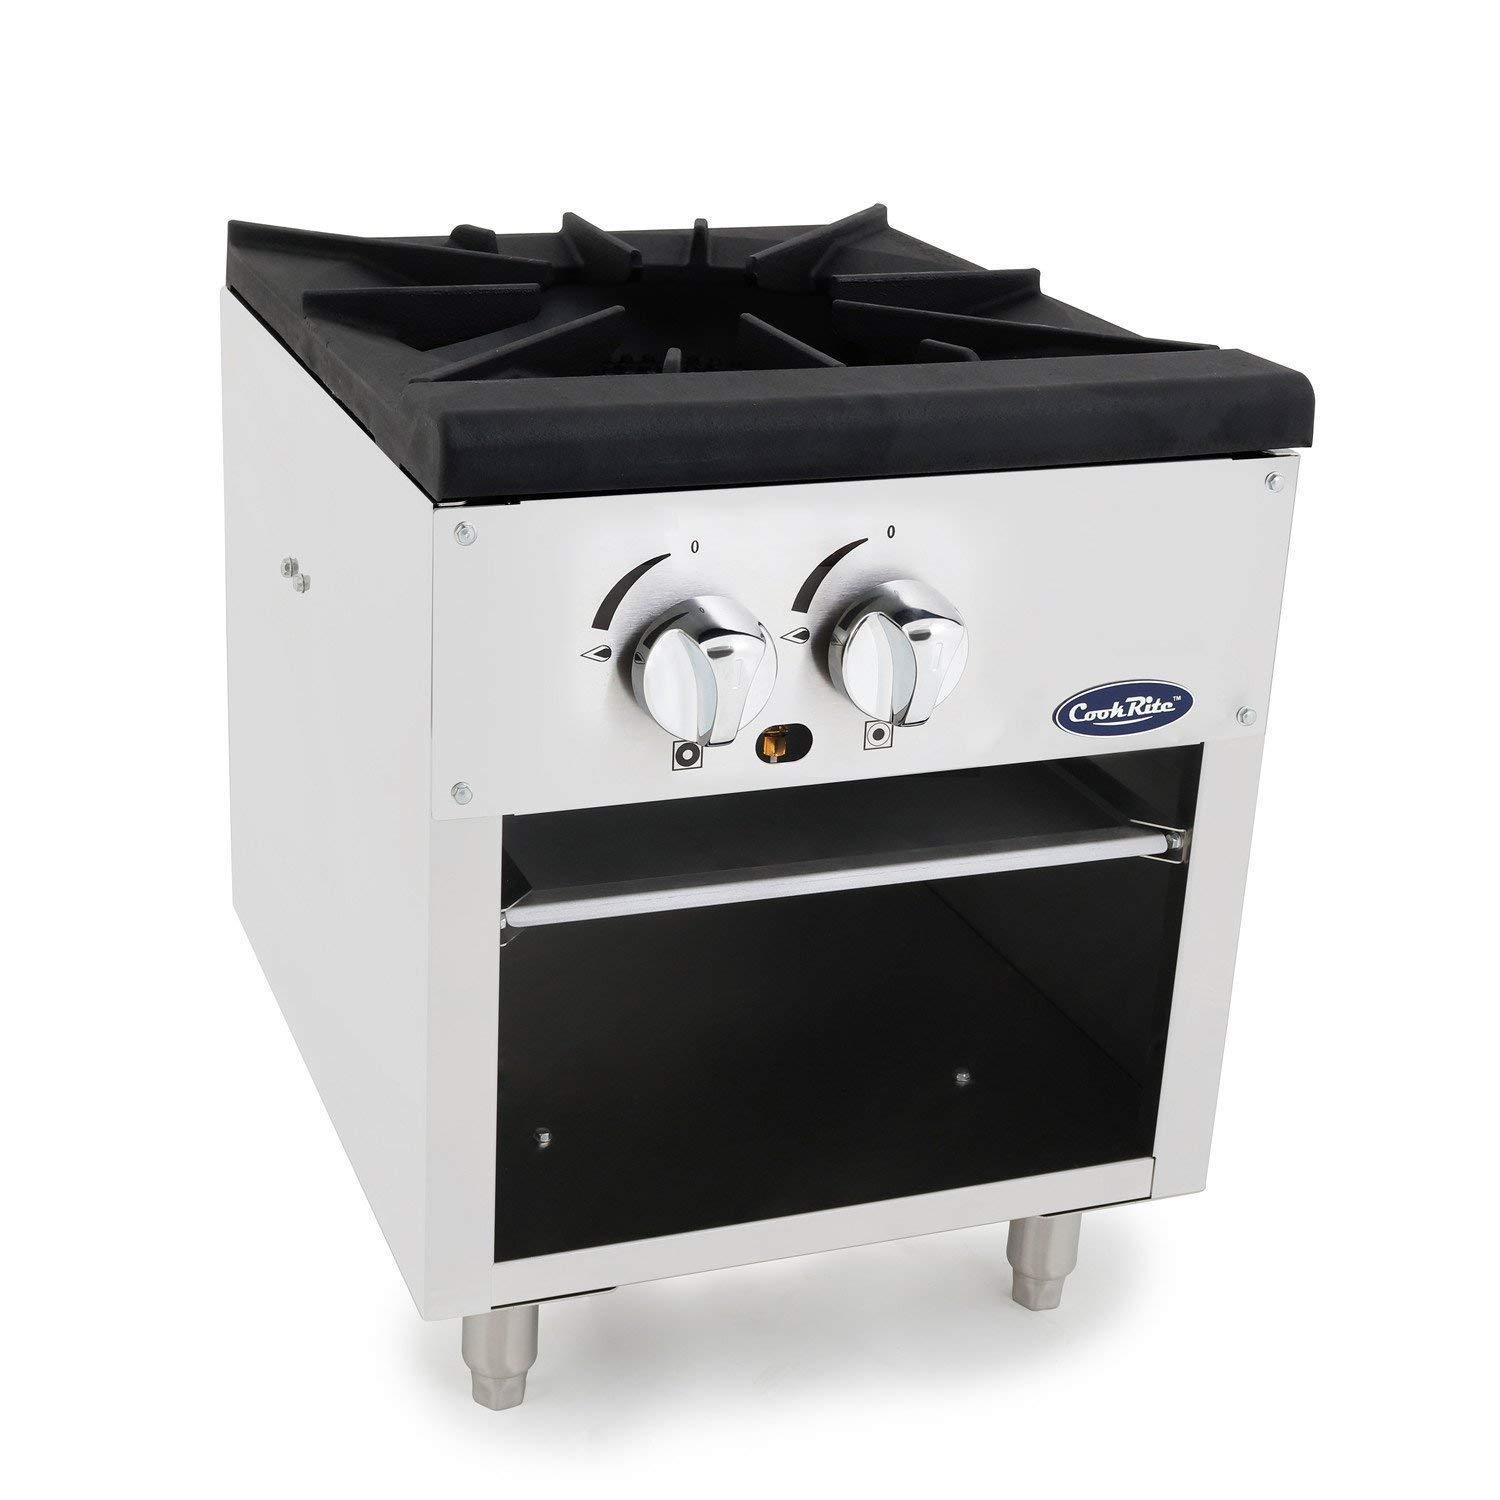 Commercial gas range Commercial Kitchen Amazoncom Cookrite Atsp181 Single Stock Pot Stove Natural Gas Stainless Steel Countertop Portable Commercial Gas Burner Range 80 000 Btu Kitchen Amazoncom Amazoncom Cookrite Atsp181 Single Stock Pot Stove Natural Gas